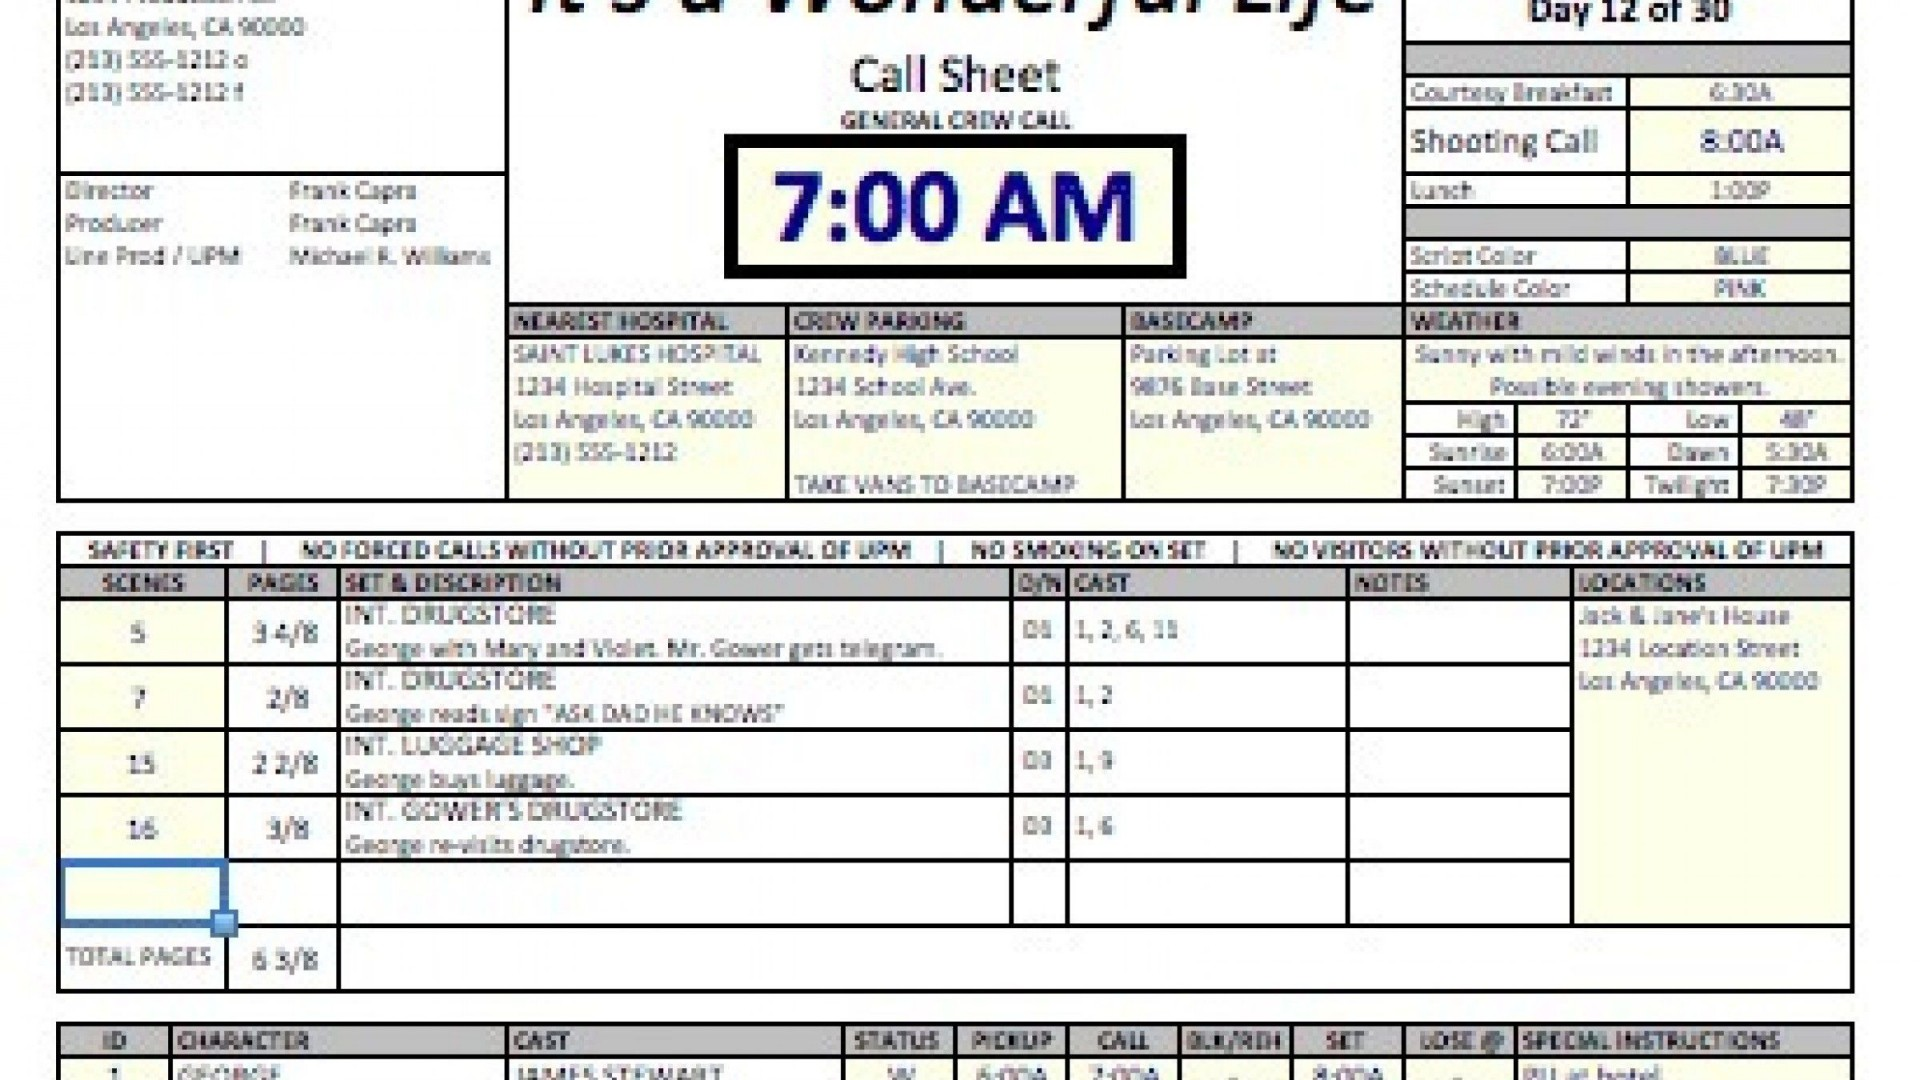 010 Fascinating Film Call Sheet Sample Highest Quality  Template Download Excel Google Doc1920